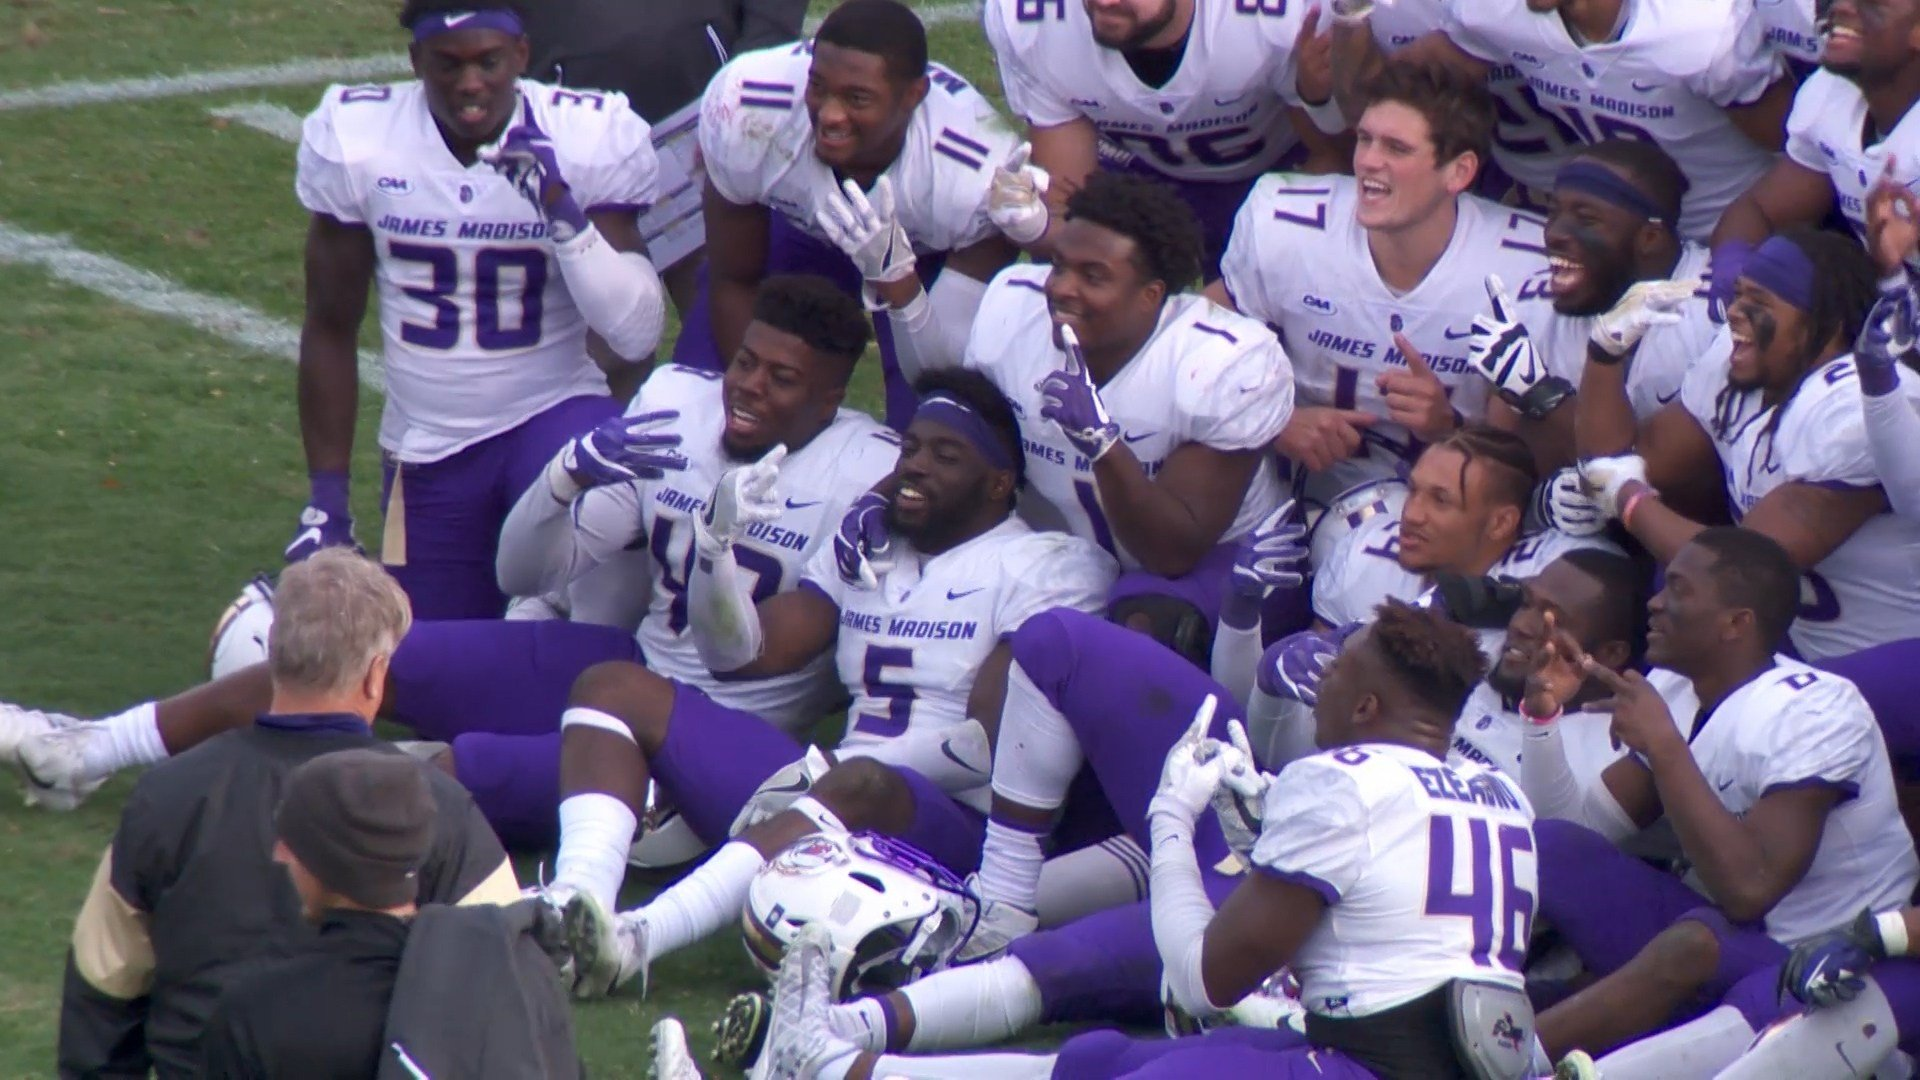 James Madison earns No. 1 seed in FCS playoffs